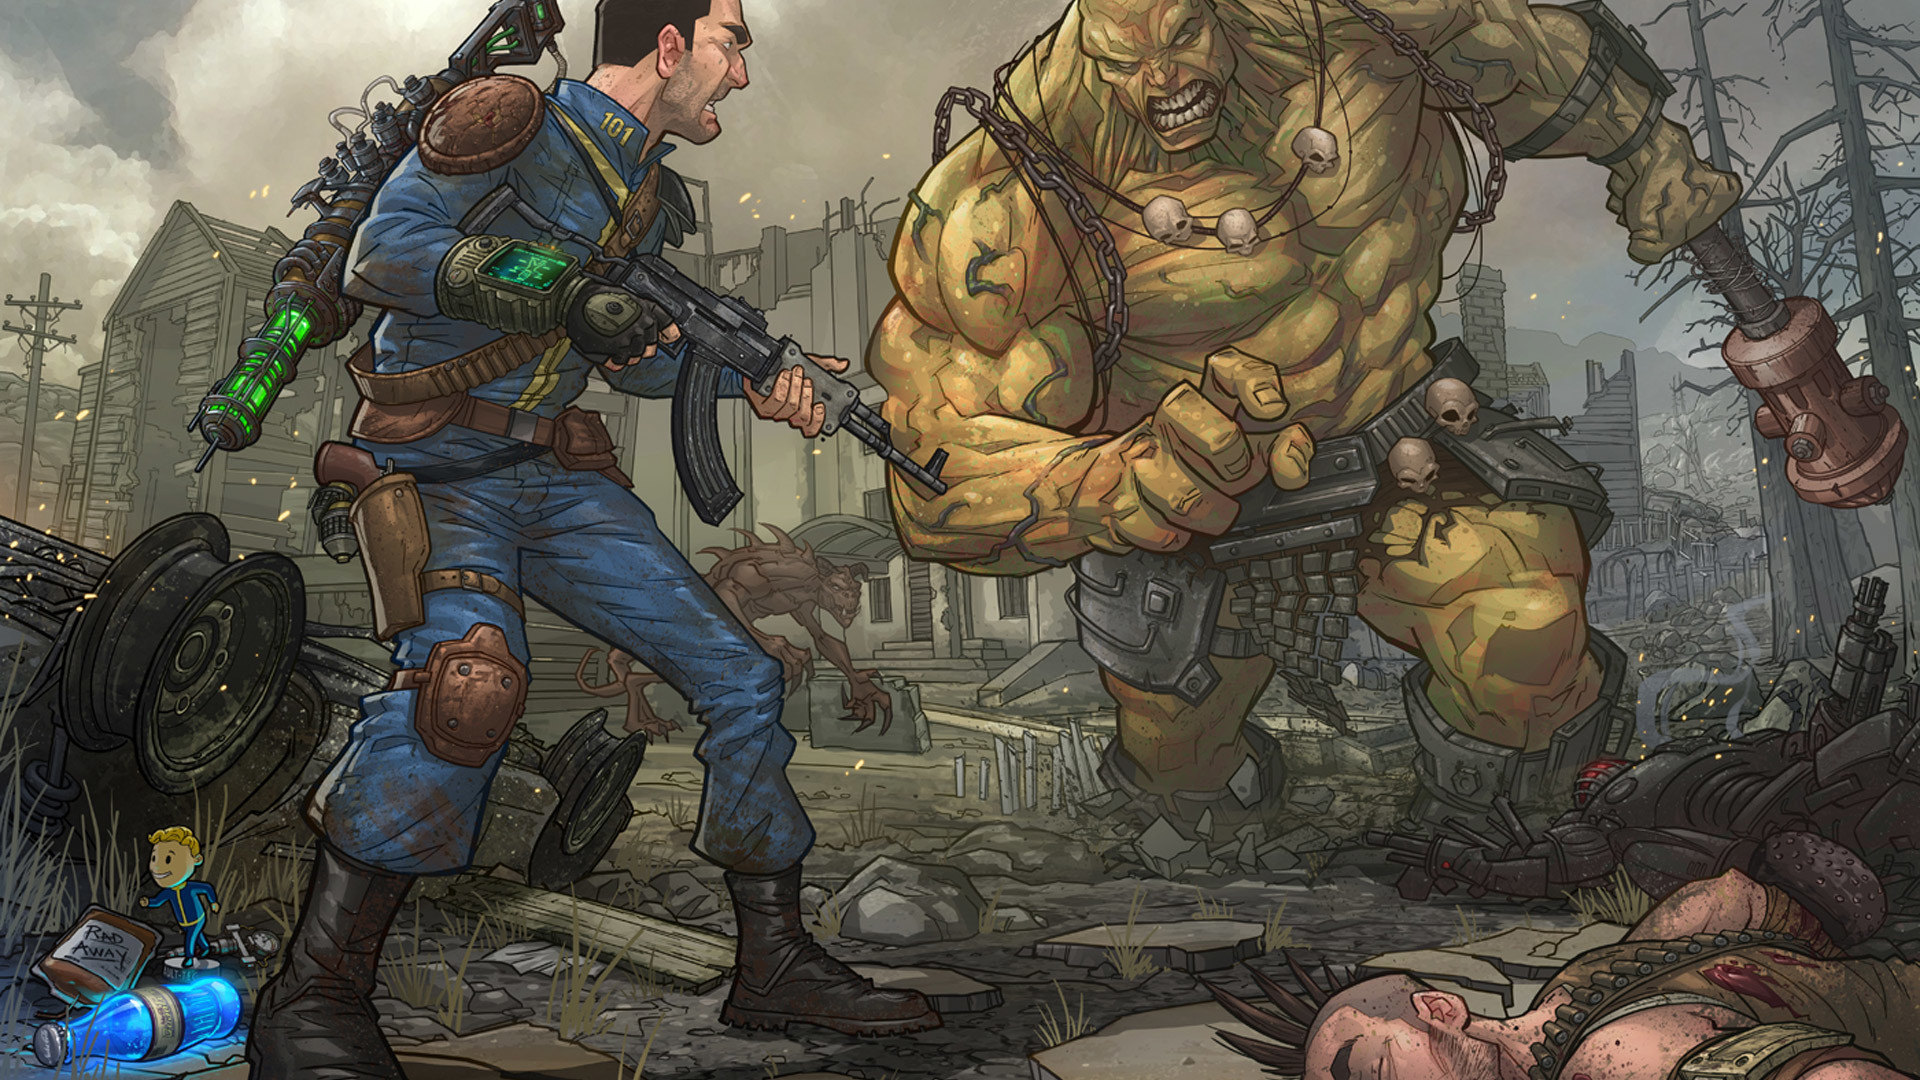 Sick Wallpapers For Iphone 5 Fallout 4 Wallpapers 1080p 76 Images